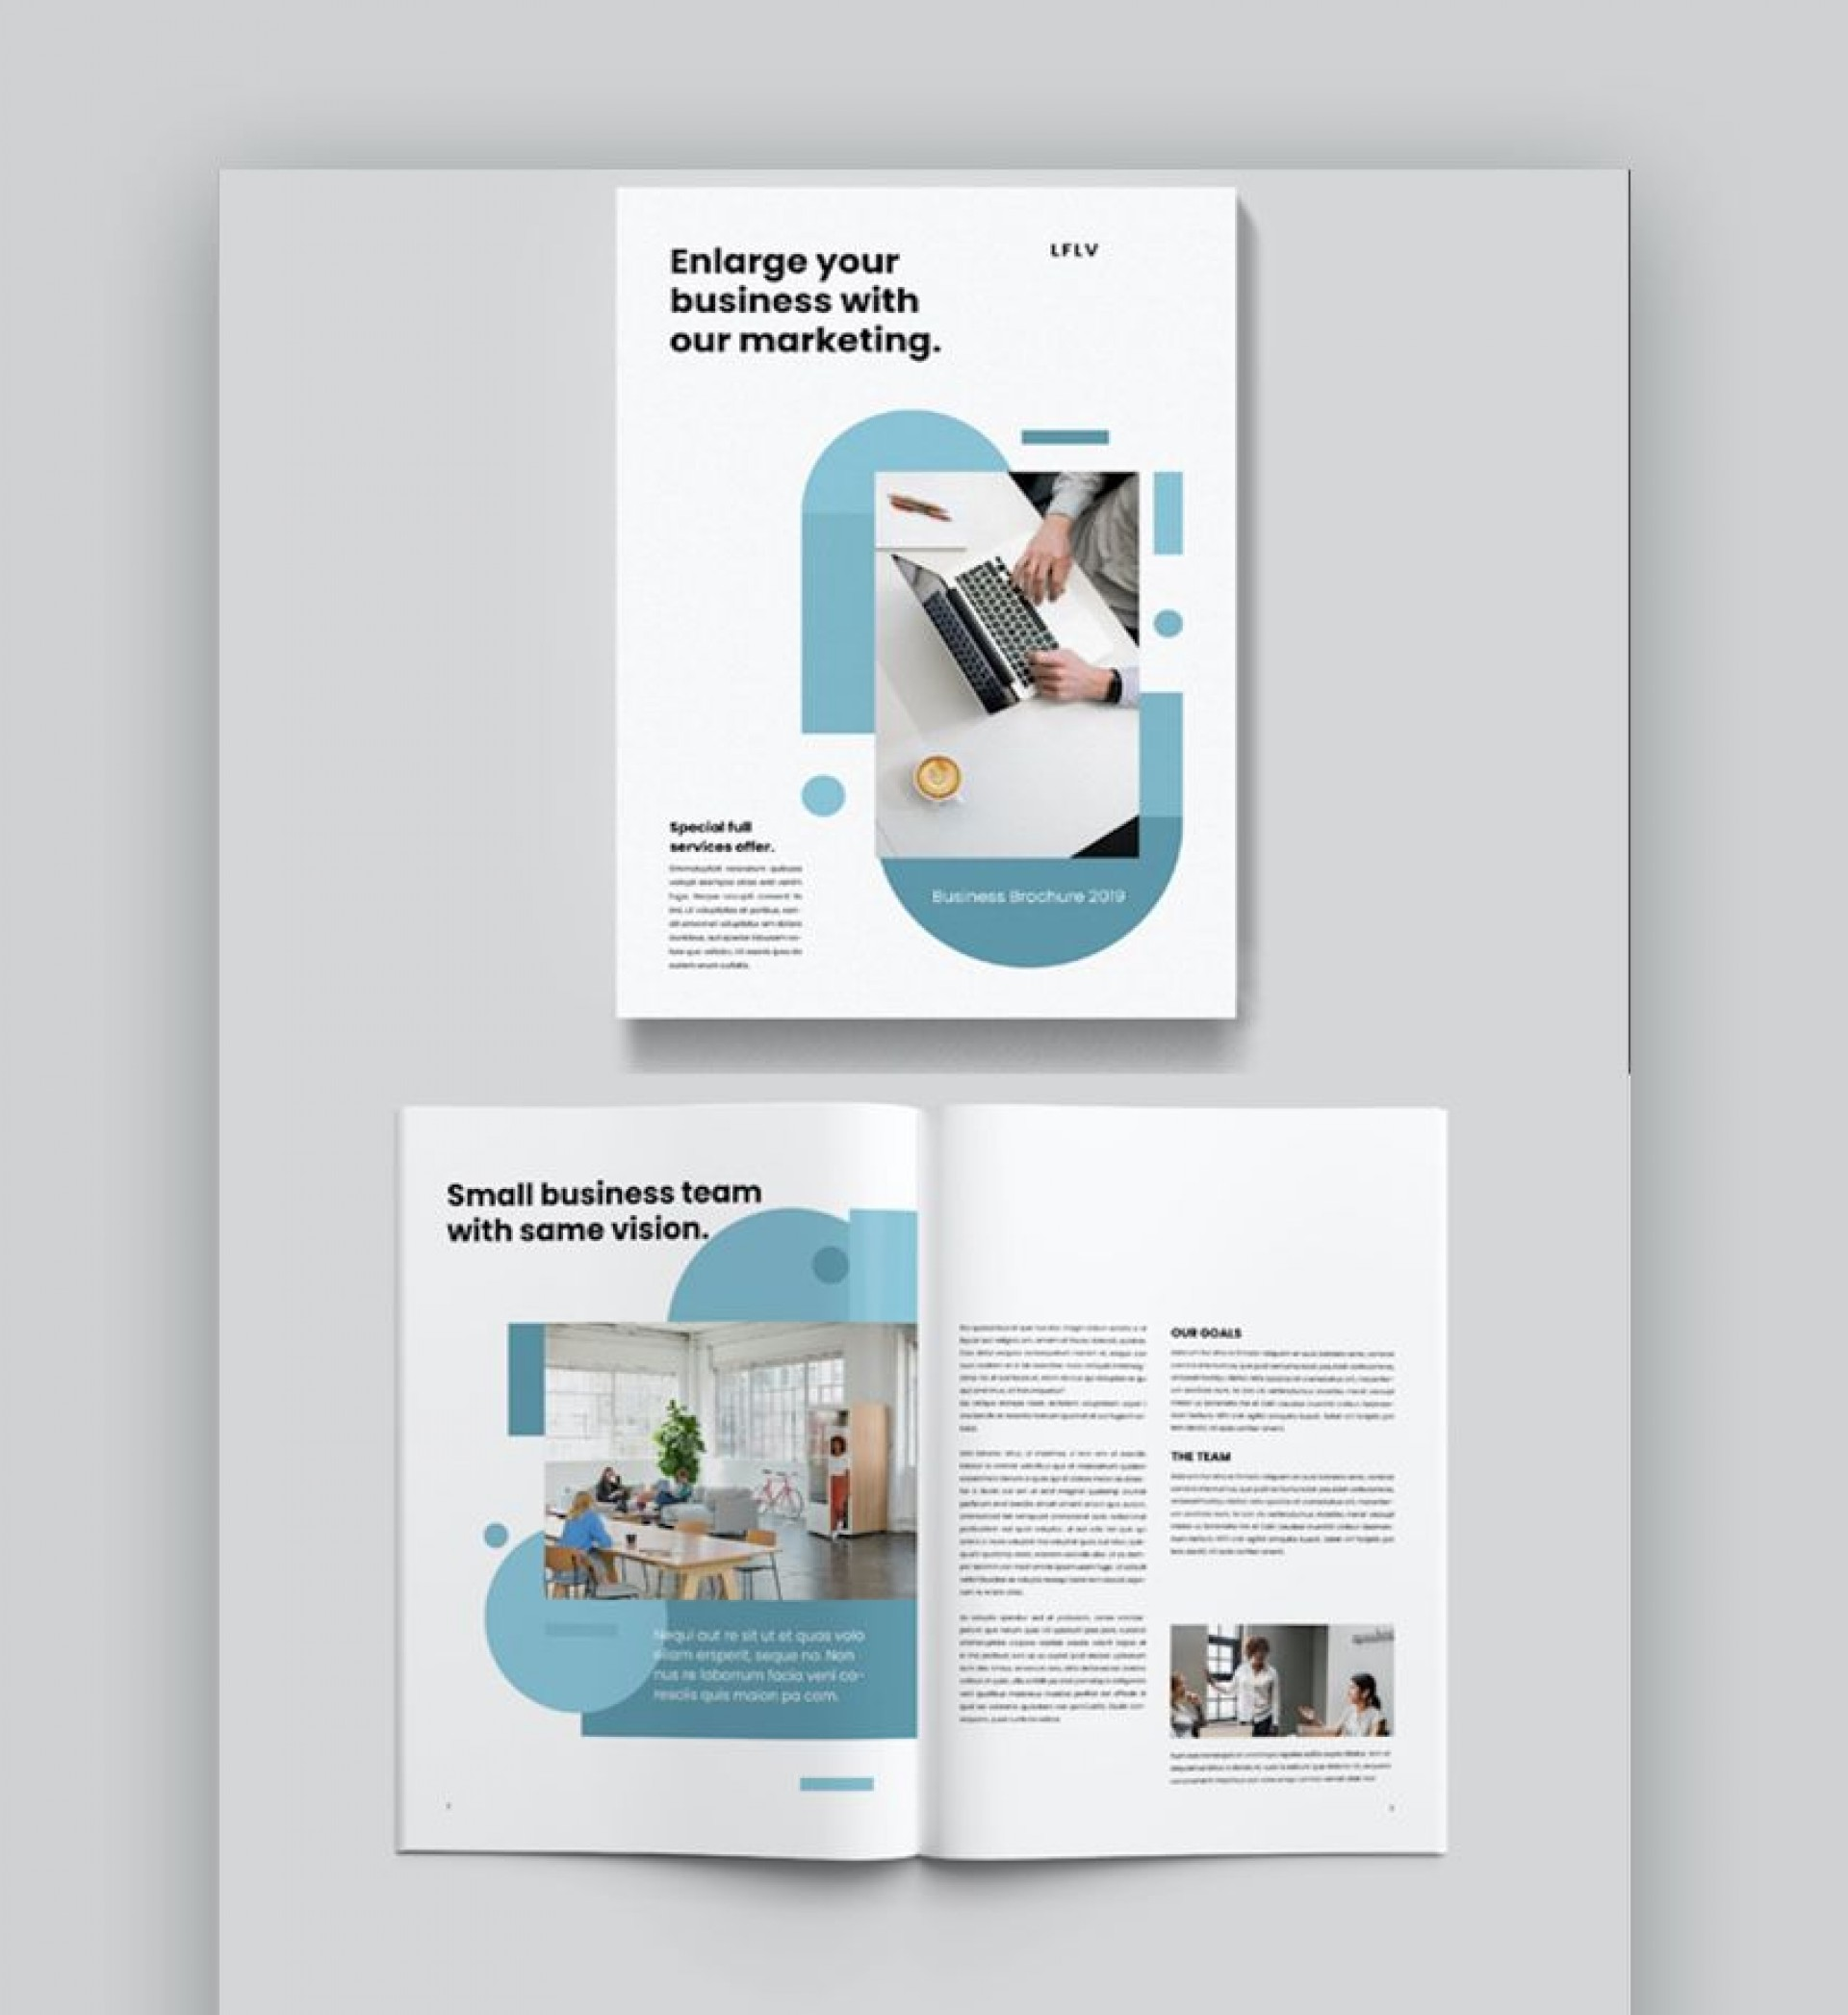 005 Formidable Brochure Template For Word Highest Quality  Online Layout Tri Fold Mac1920